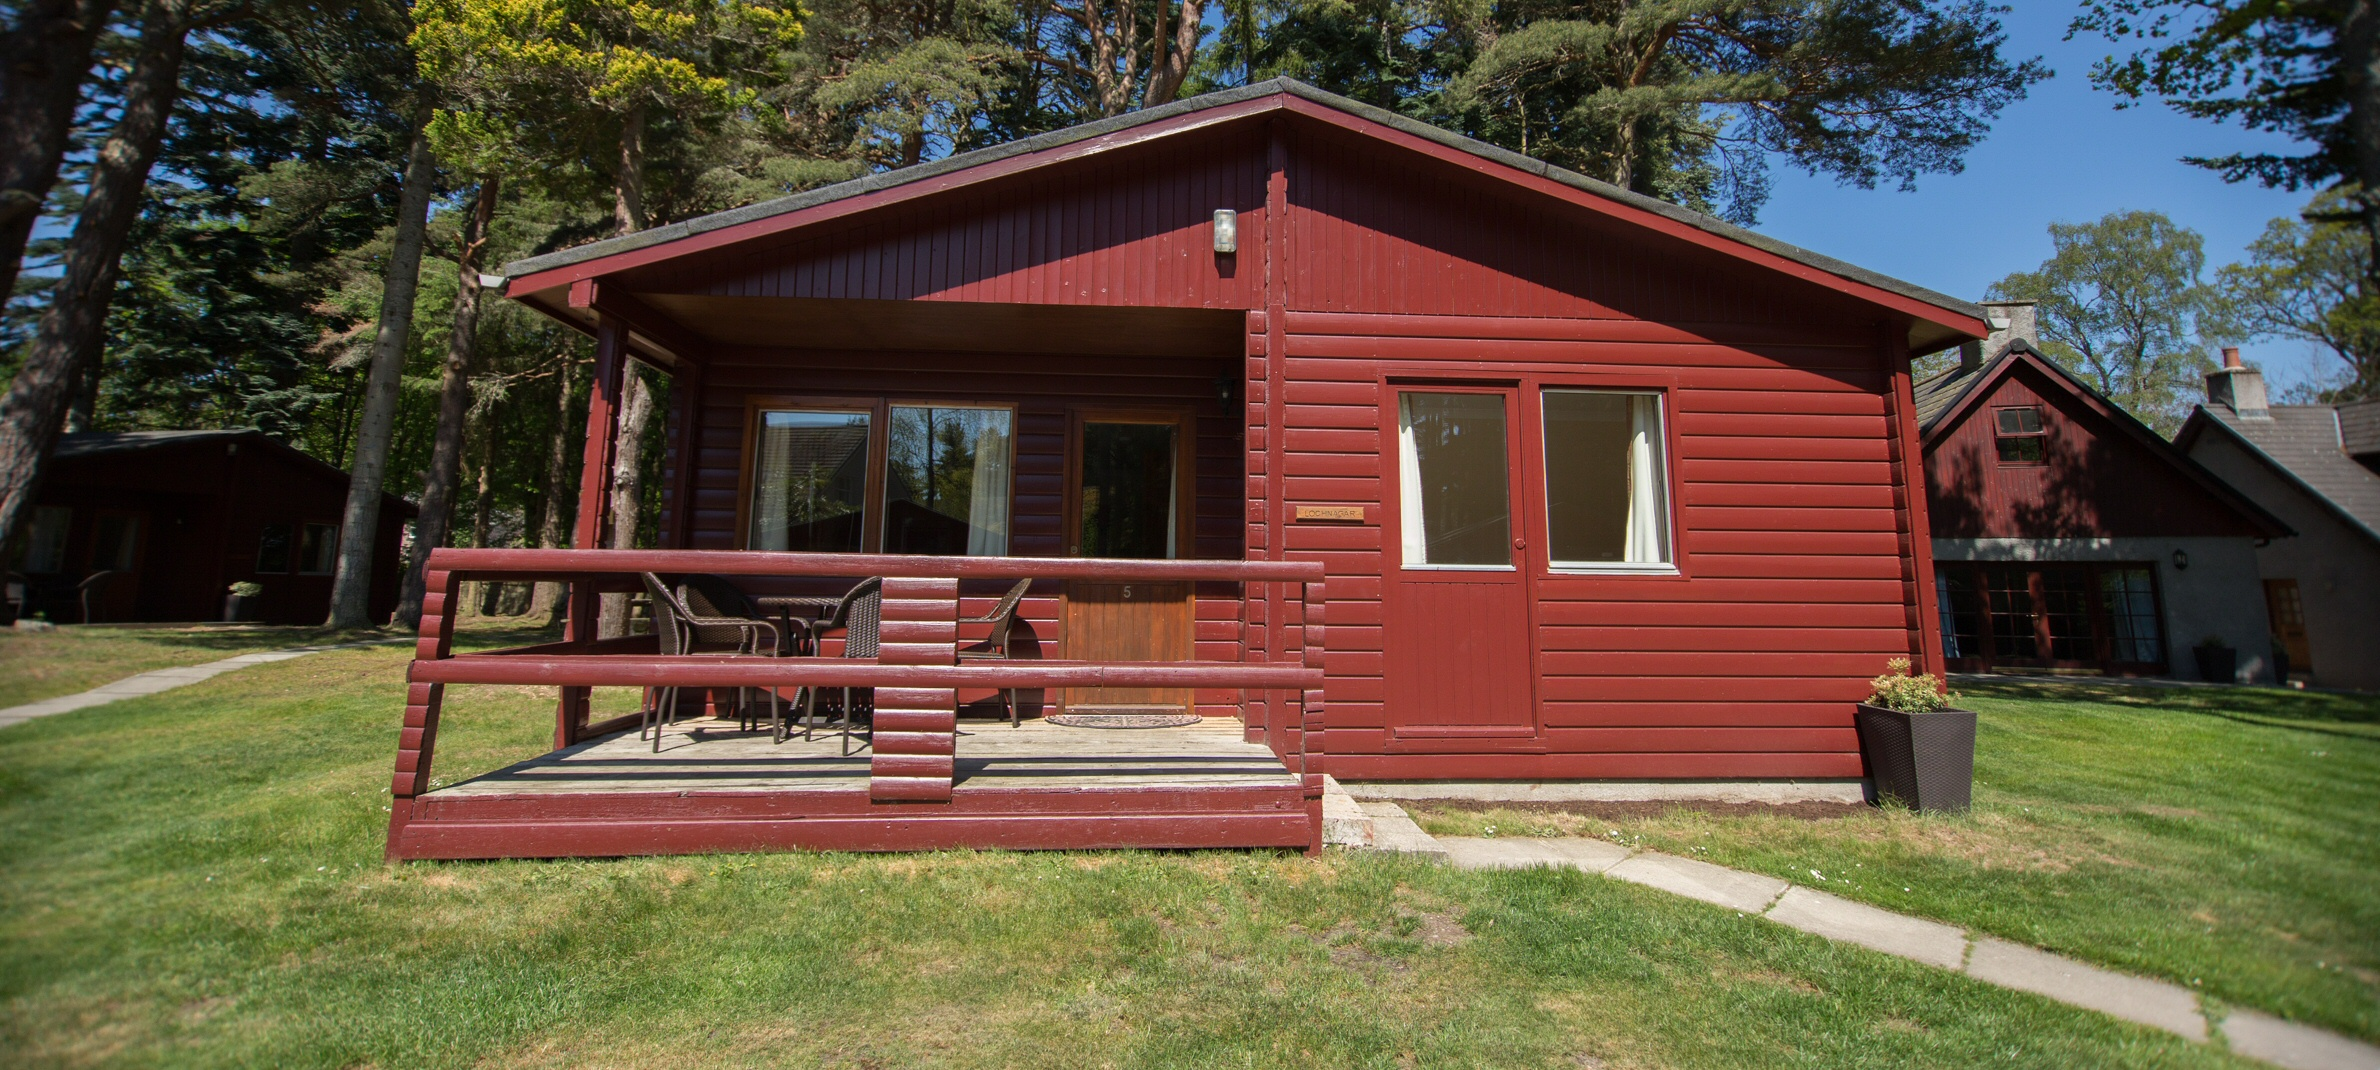 <h2>7 self-catering lodges in the heart of Ballater and Royal Deeside - Lochnagar</h2><div class='slide-content'></div>